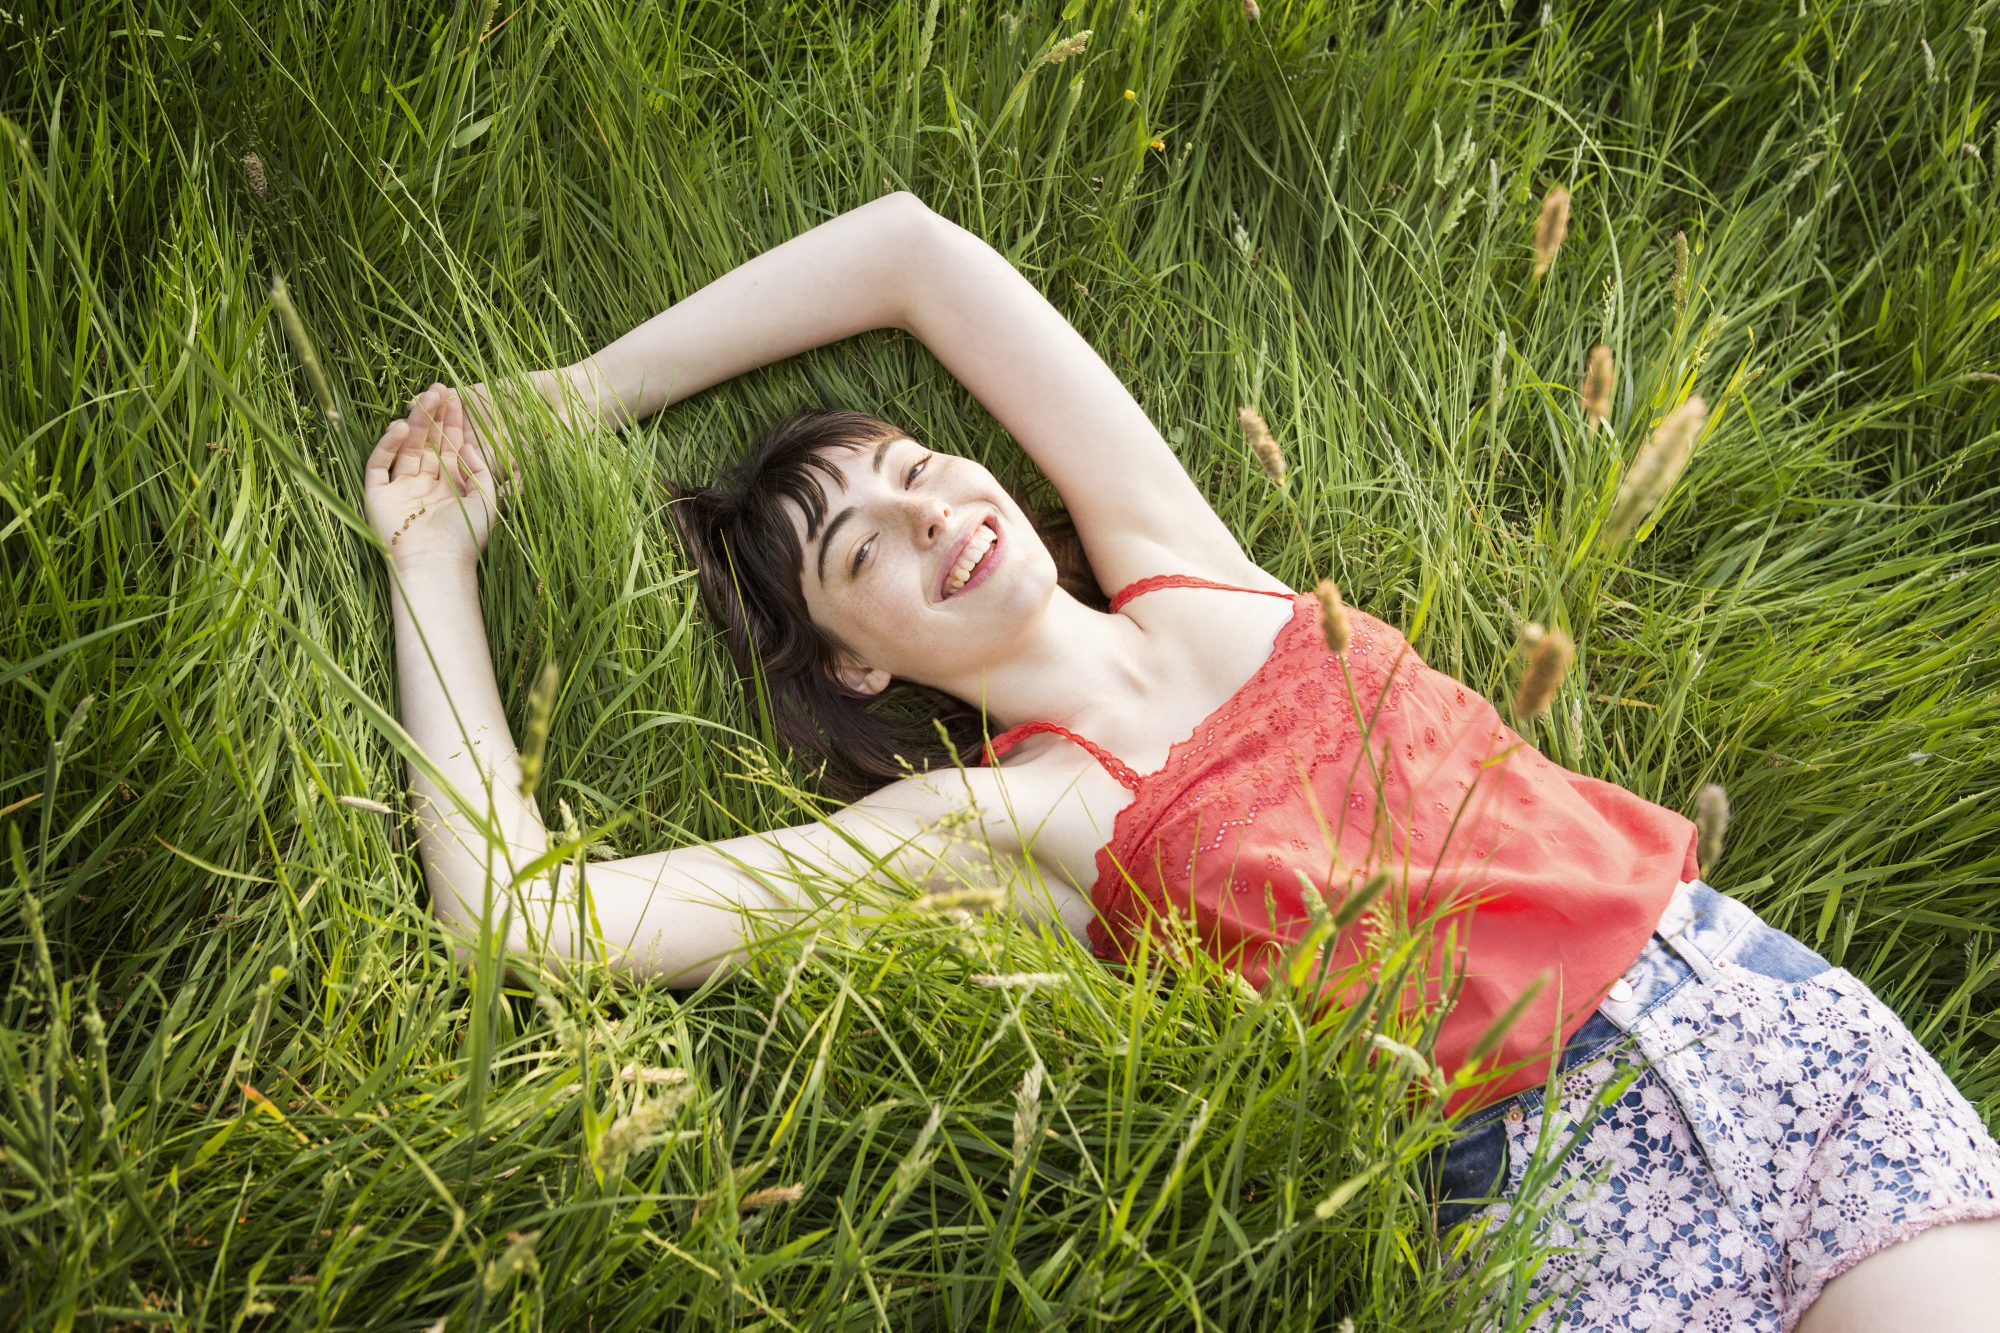 what is earthing? What is grounding?